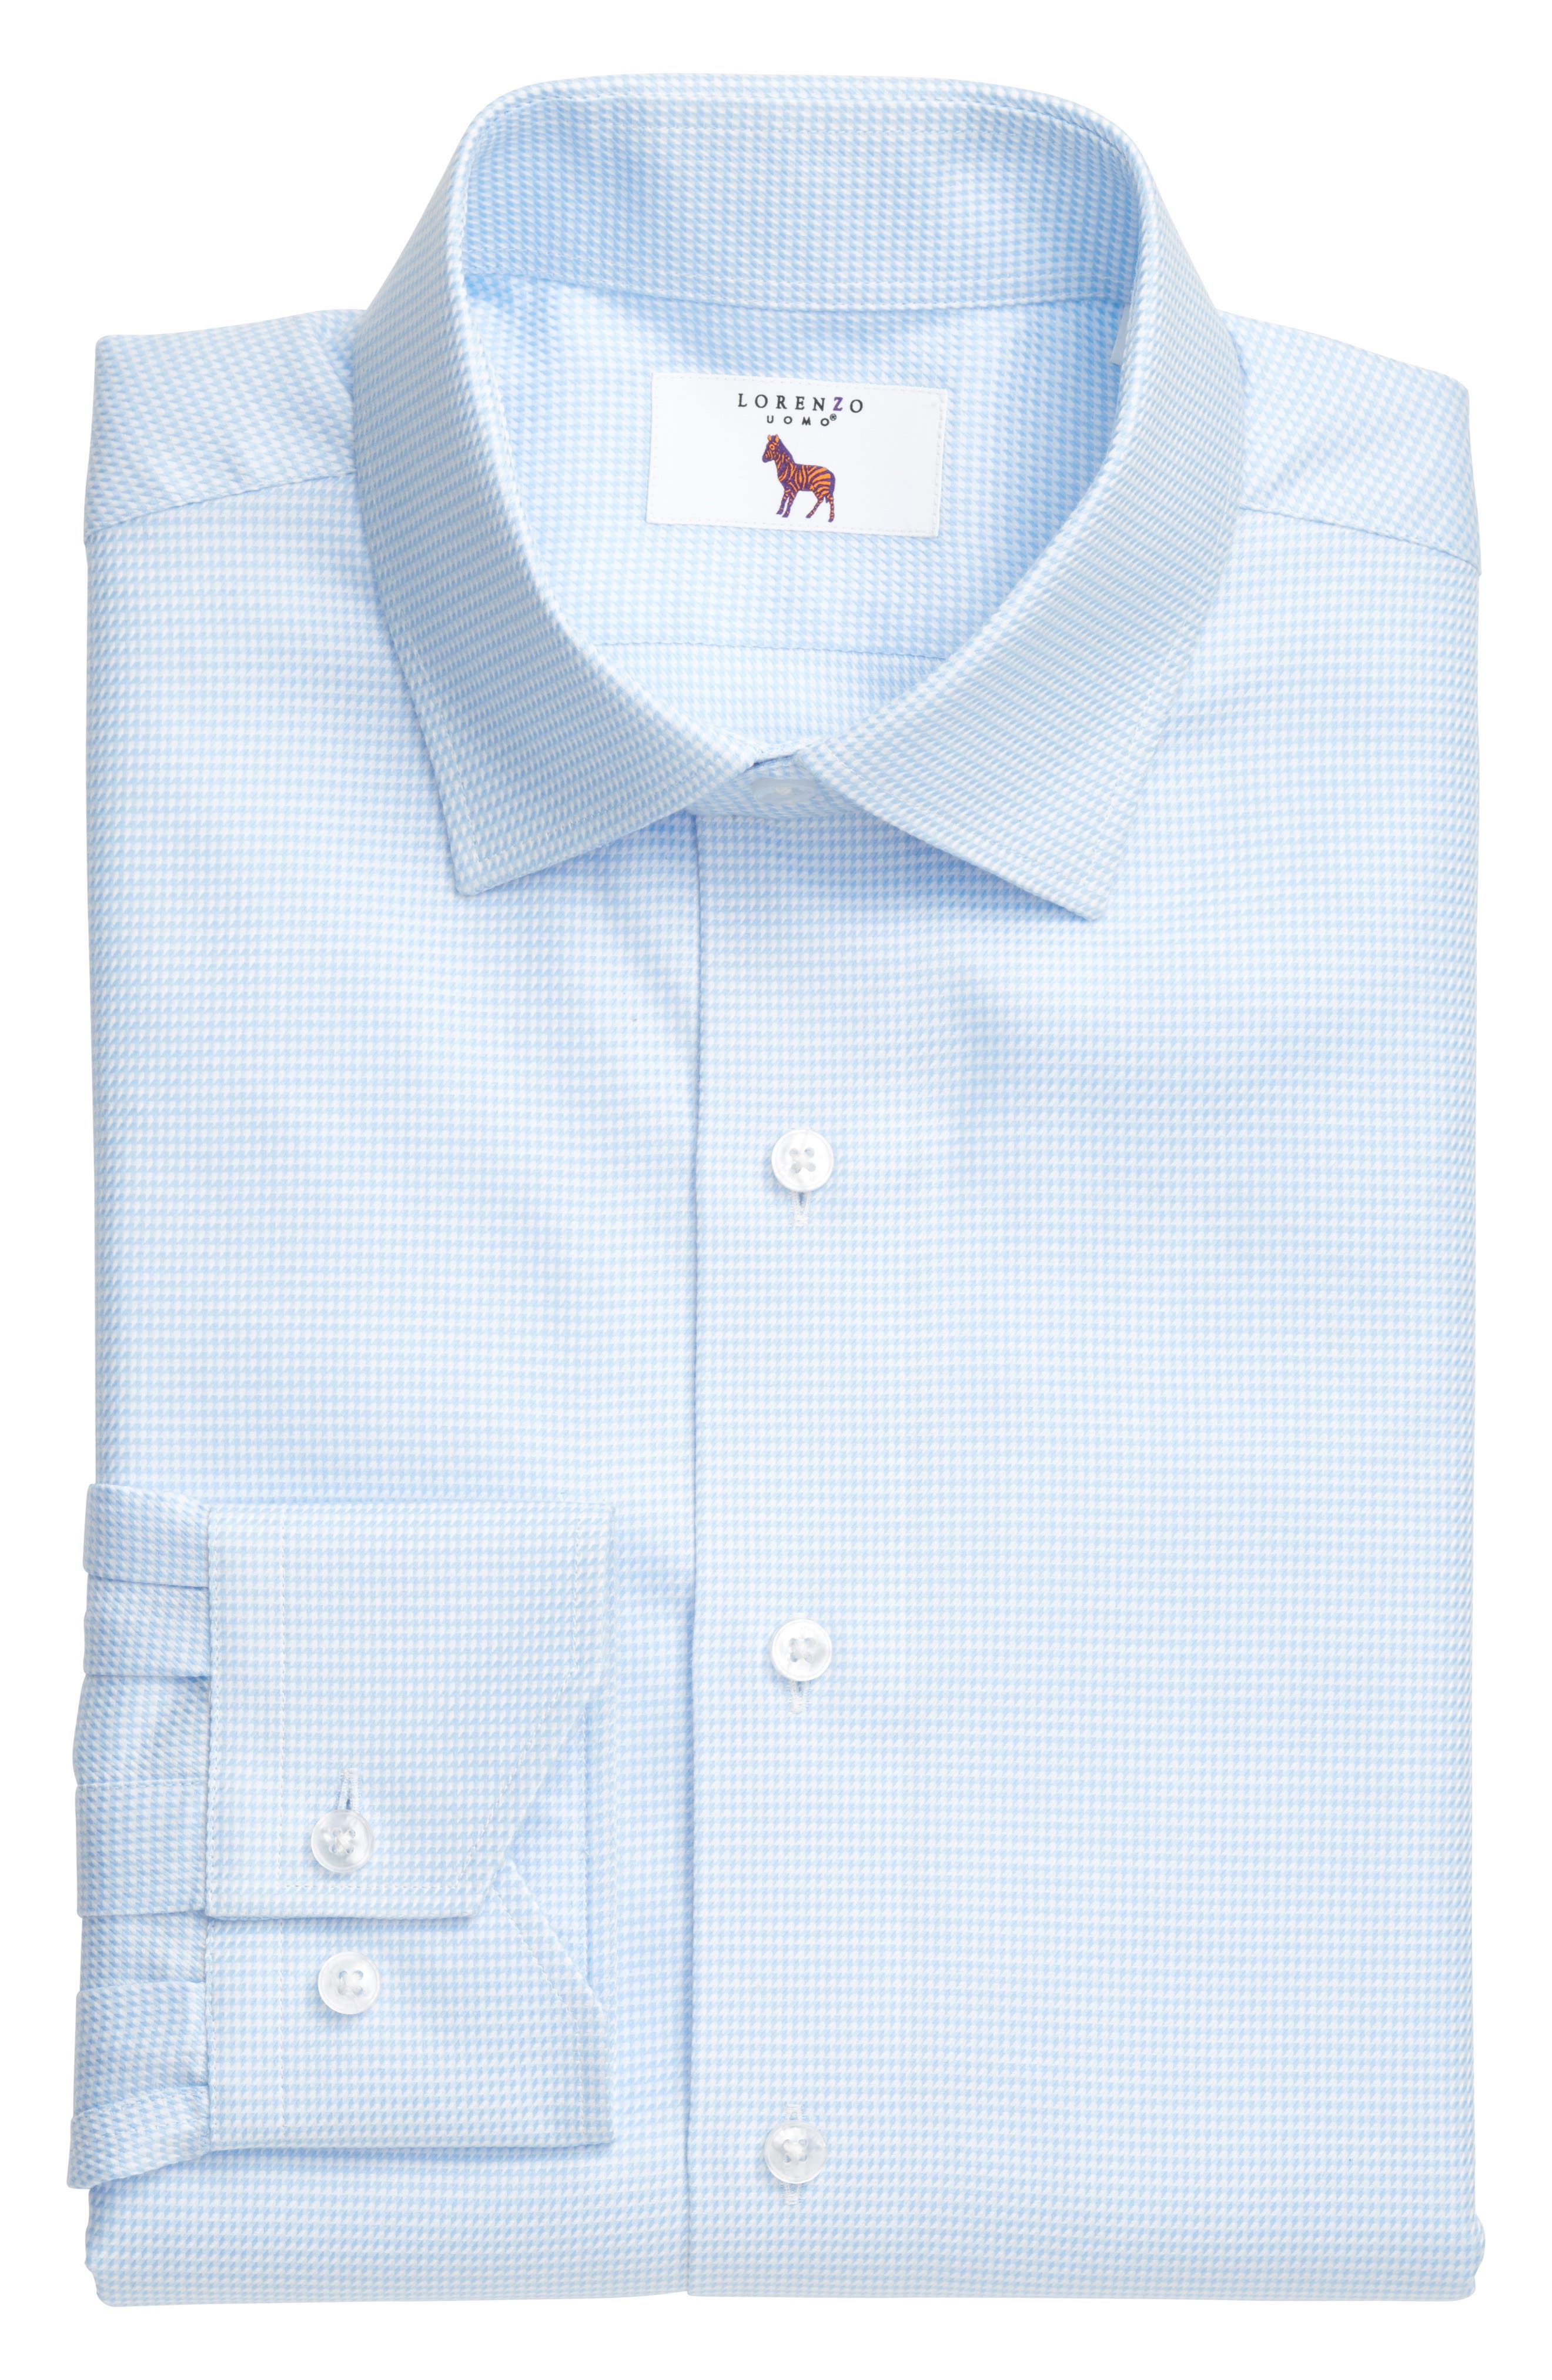 LORENZO UOMO, Trim Fit Houndstooth Dress Shirt, Alternate thumbnail 3, color, LIGHT BLUE